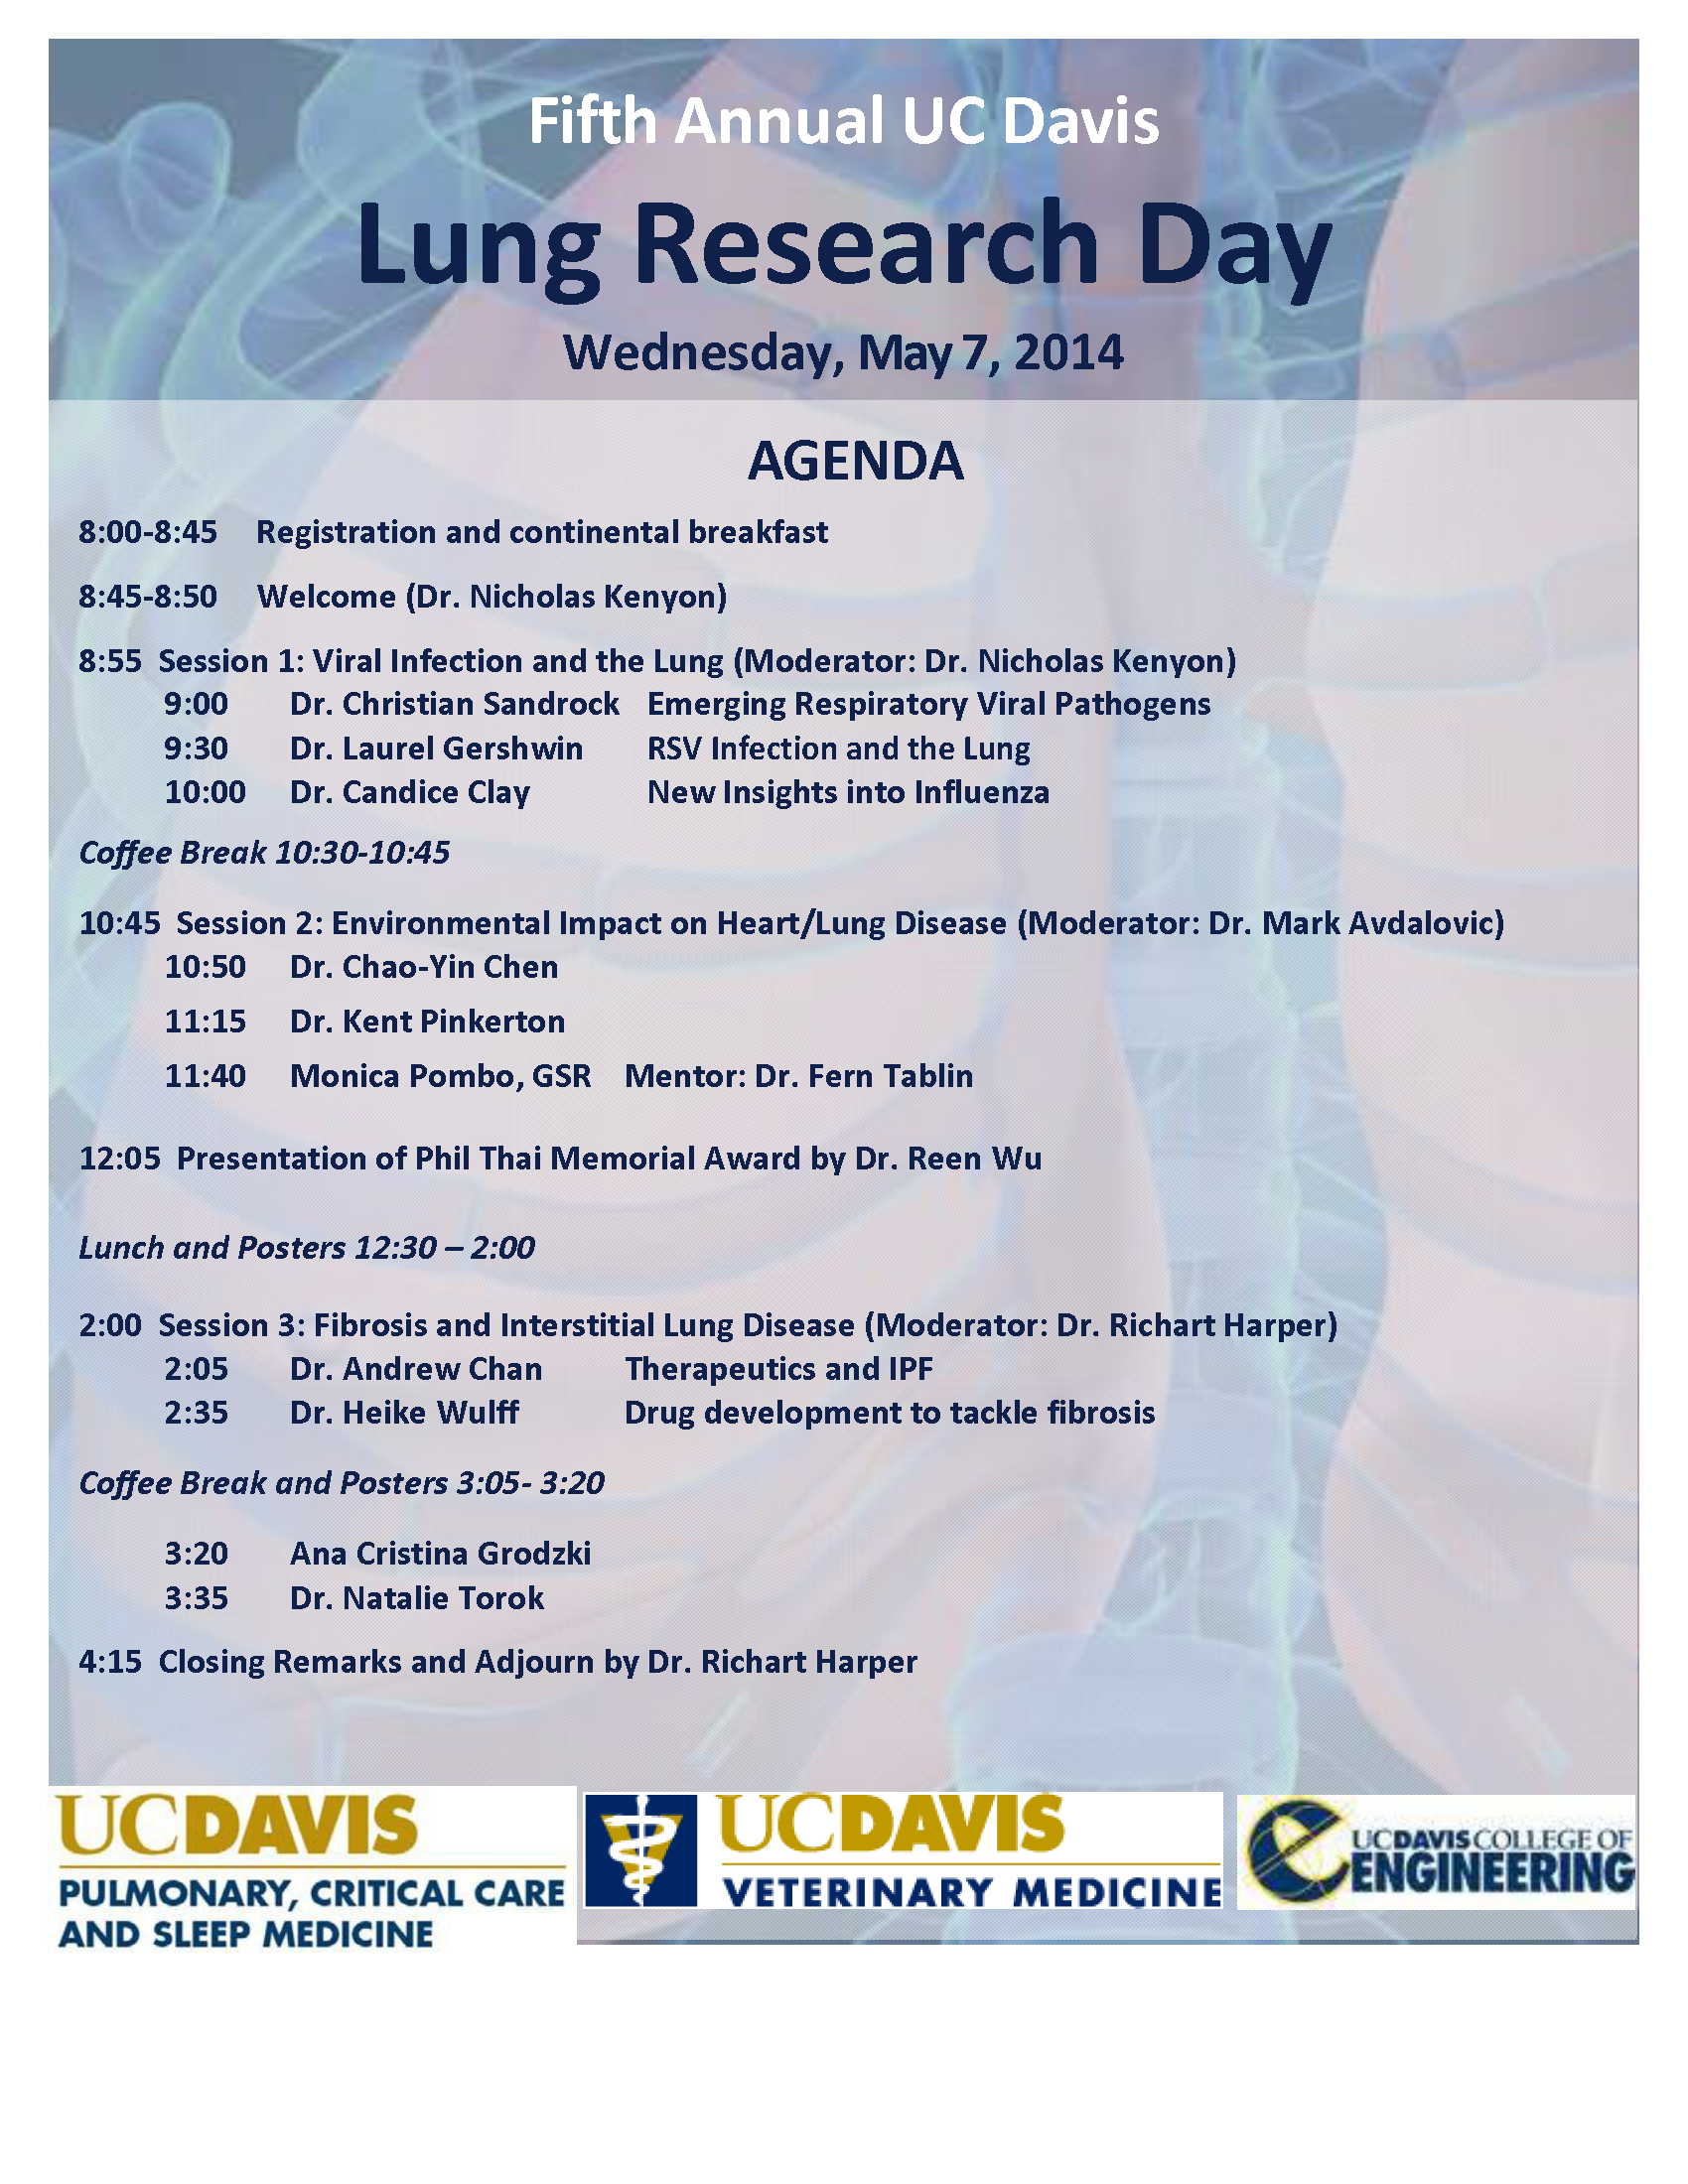 Lung Research Day Agenda